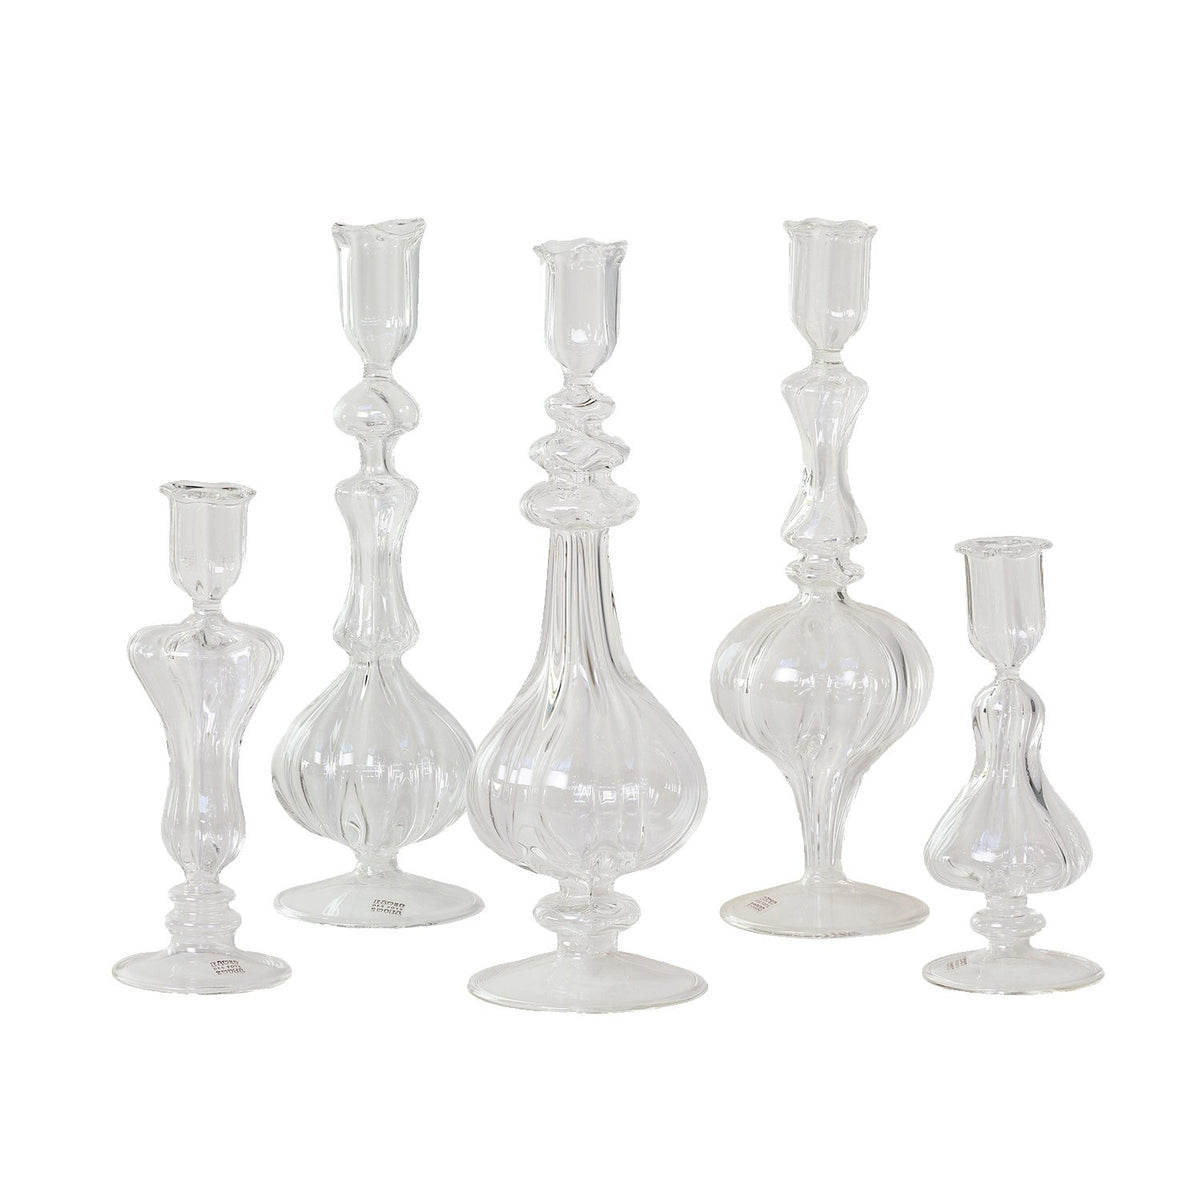 Glass Candlesticks, 1 pc